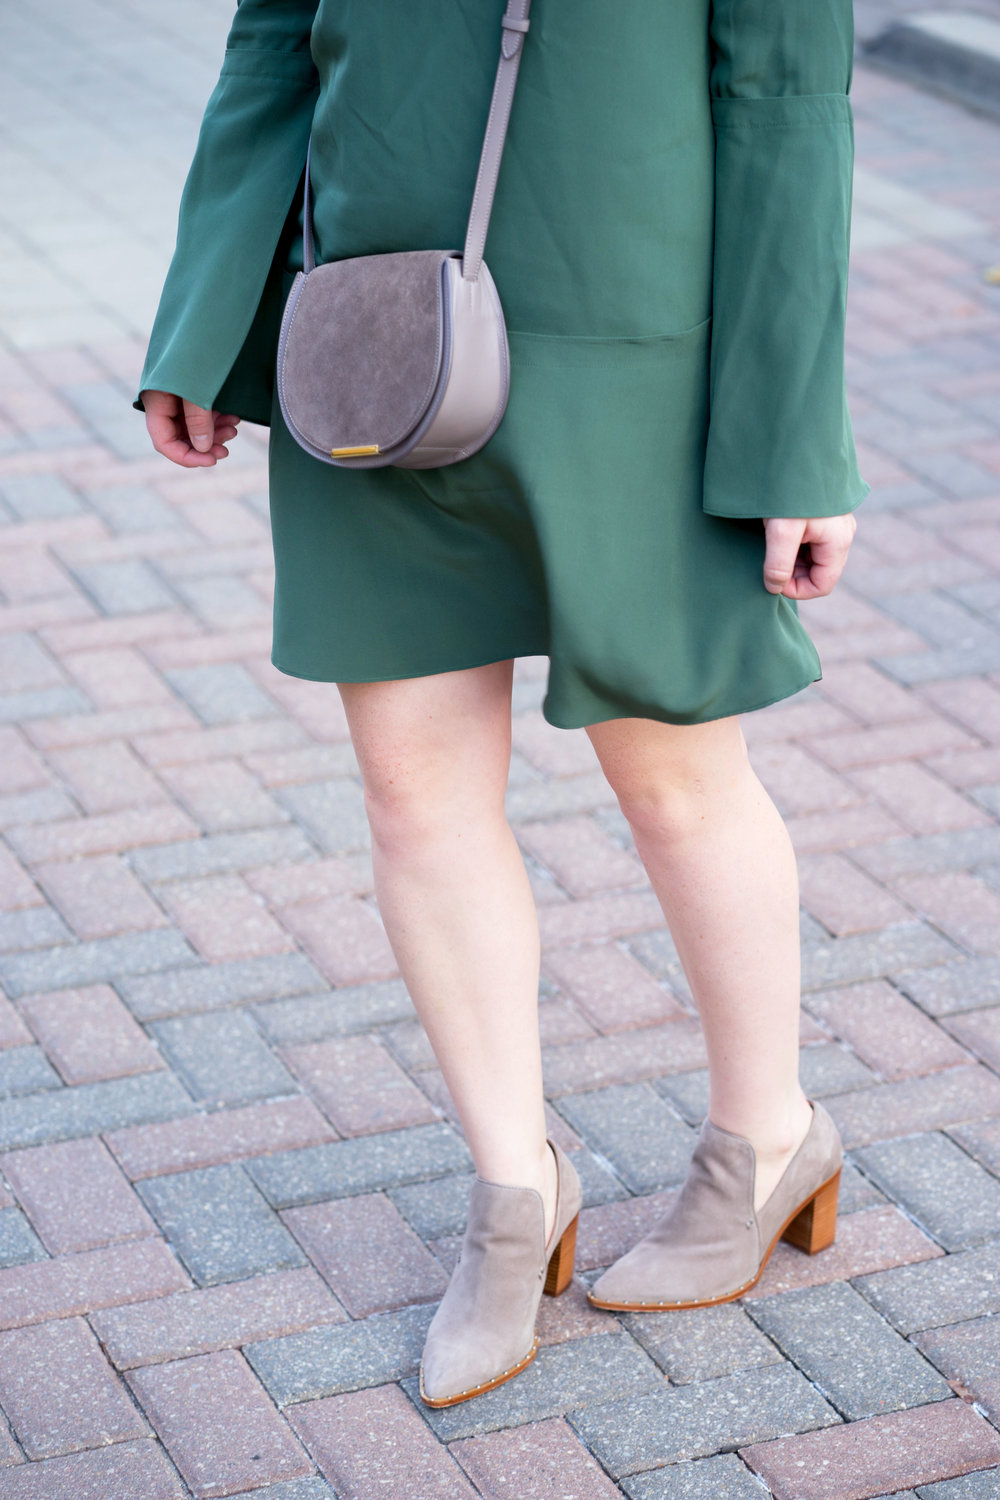 Maggie a la Mode - Schutz Fomo Bootie, Tibi Green Silk Fluted Bell Sleeve Dress, Cuyana Mini Saddle Bag, Warby Parker Aldridge Sunglasses, Madewell Earrings